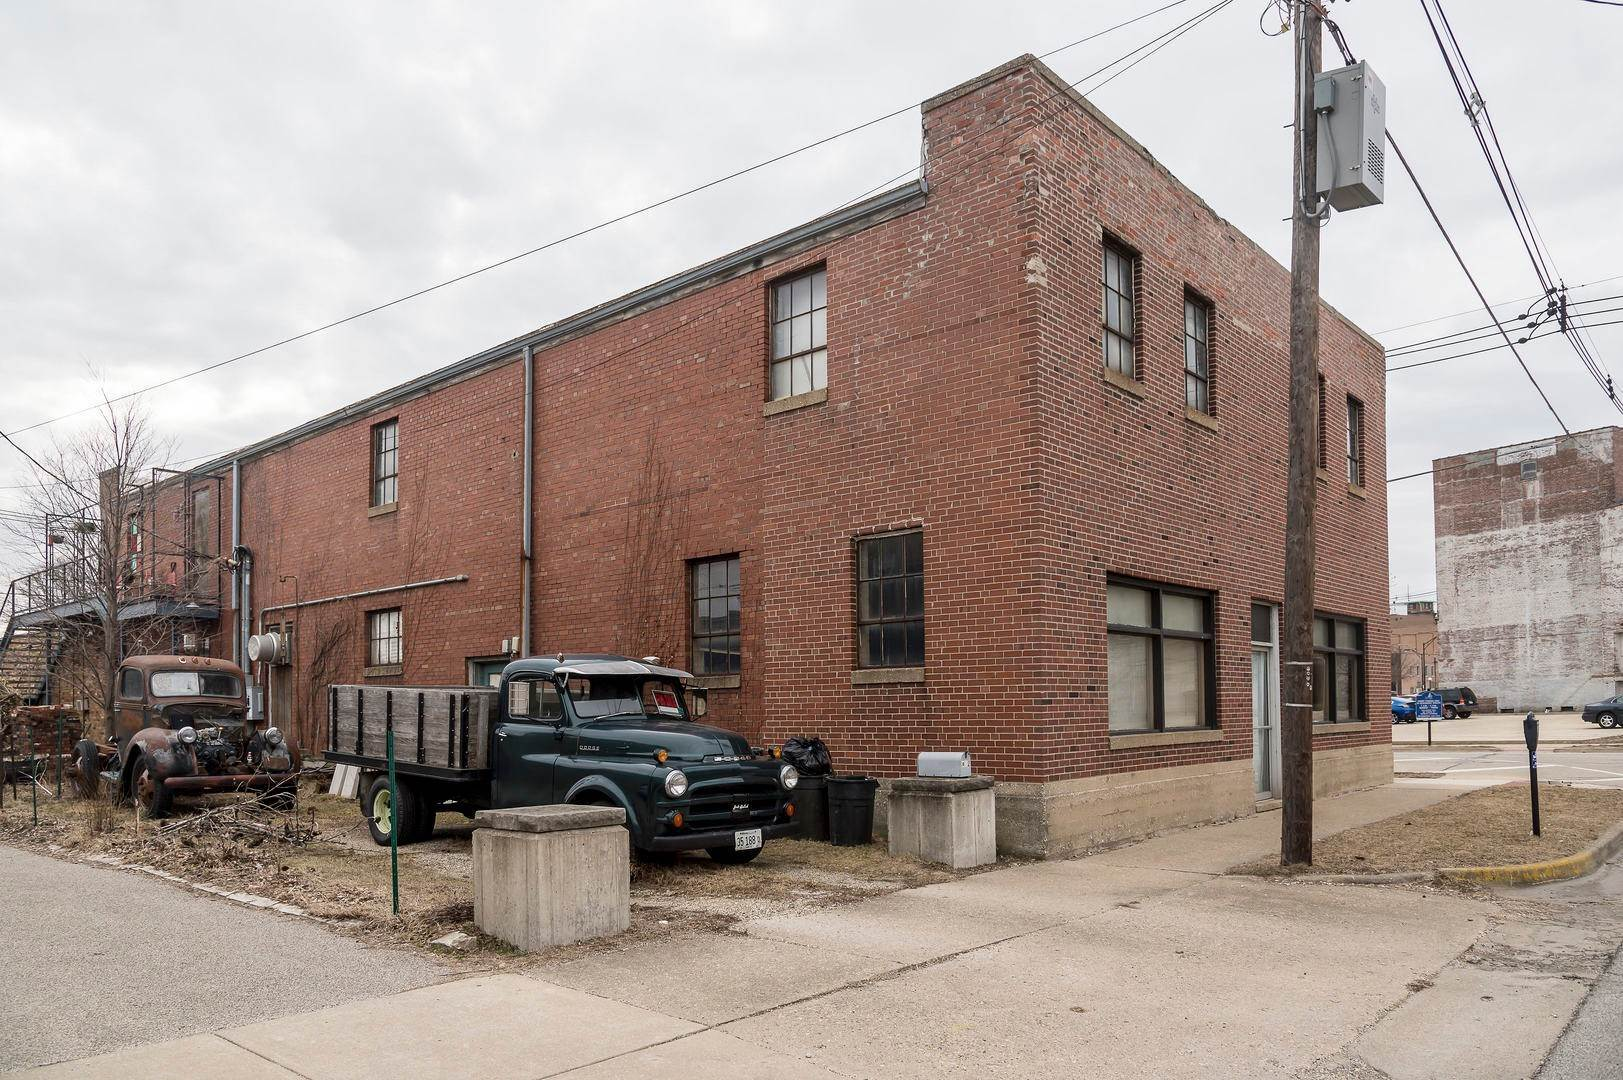 Commercial for Sale at 502 N Hickory Street Champaign, Illinois 61820 United States